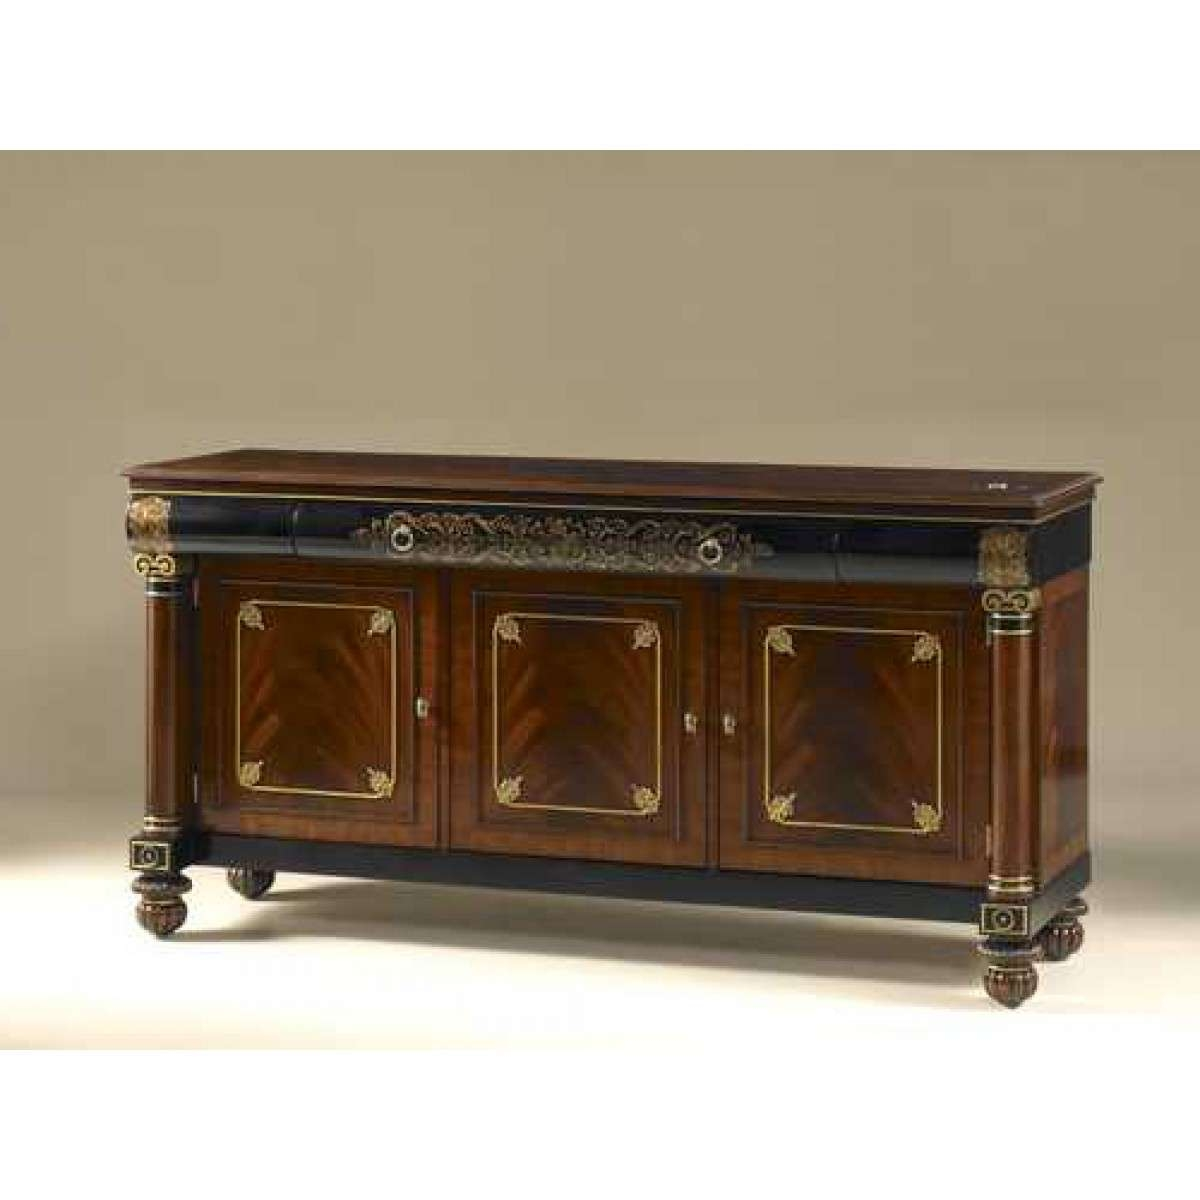 Smith Mahogany And Black Lacquer Finished Tv Stand, Handpainted Pertaining To Mahogany Tv Stands (View 14 of 15)